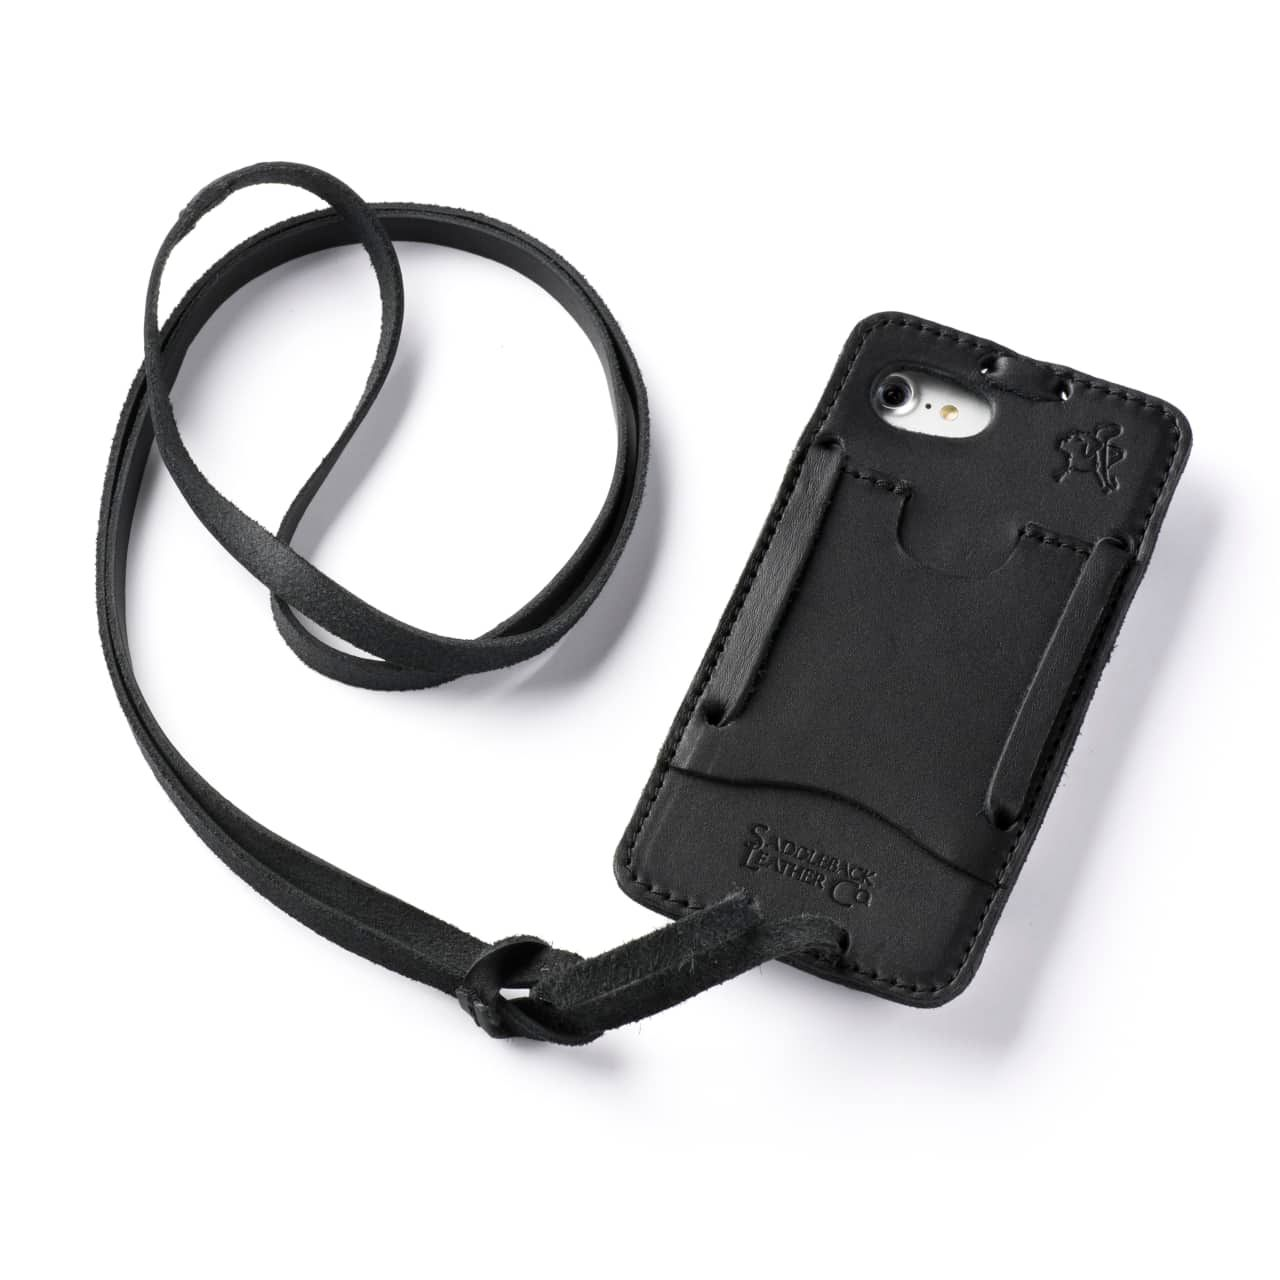 Leather iPhone 8 Case in Color Black with the Lanyard attached back angle showing empty card slot